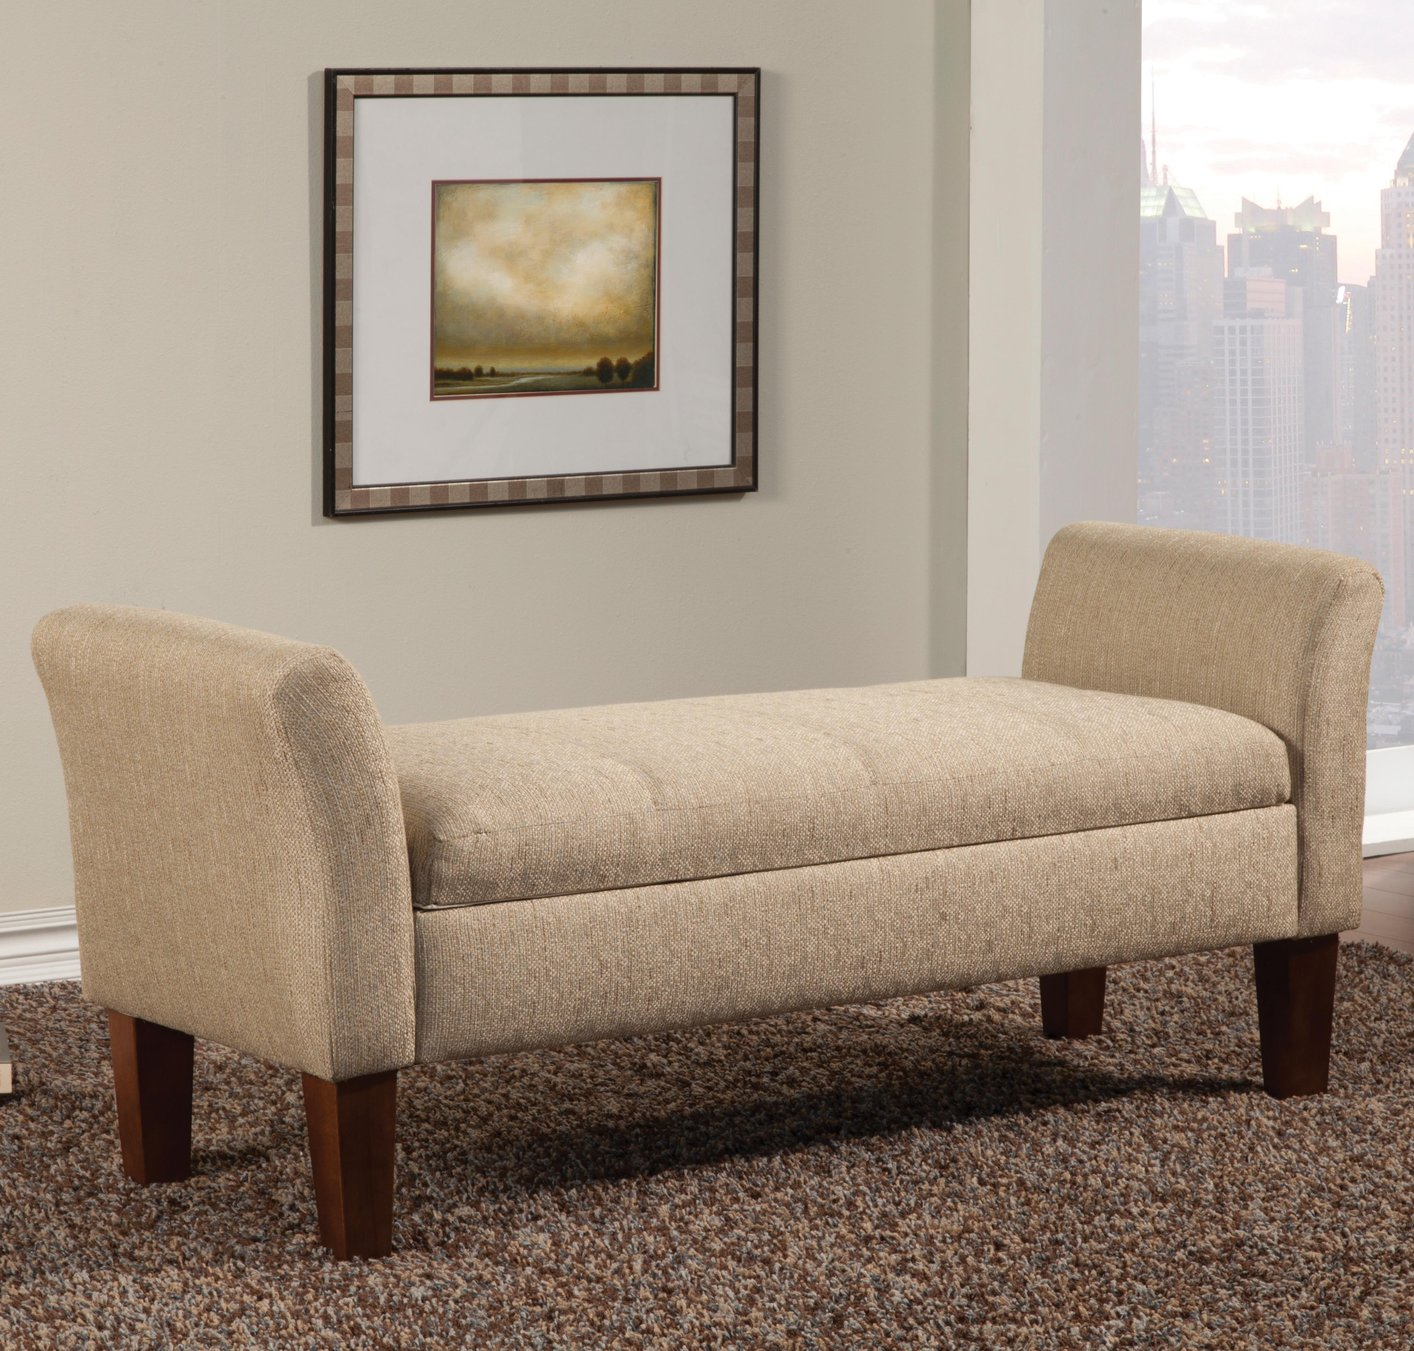 Beige Wood Storage Bench Sofa Bench With Storage44